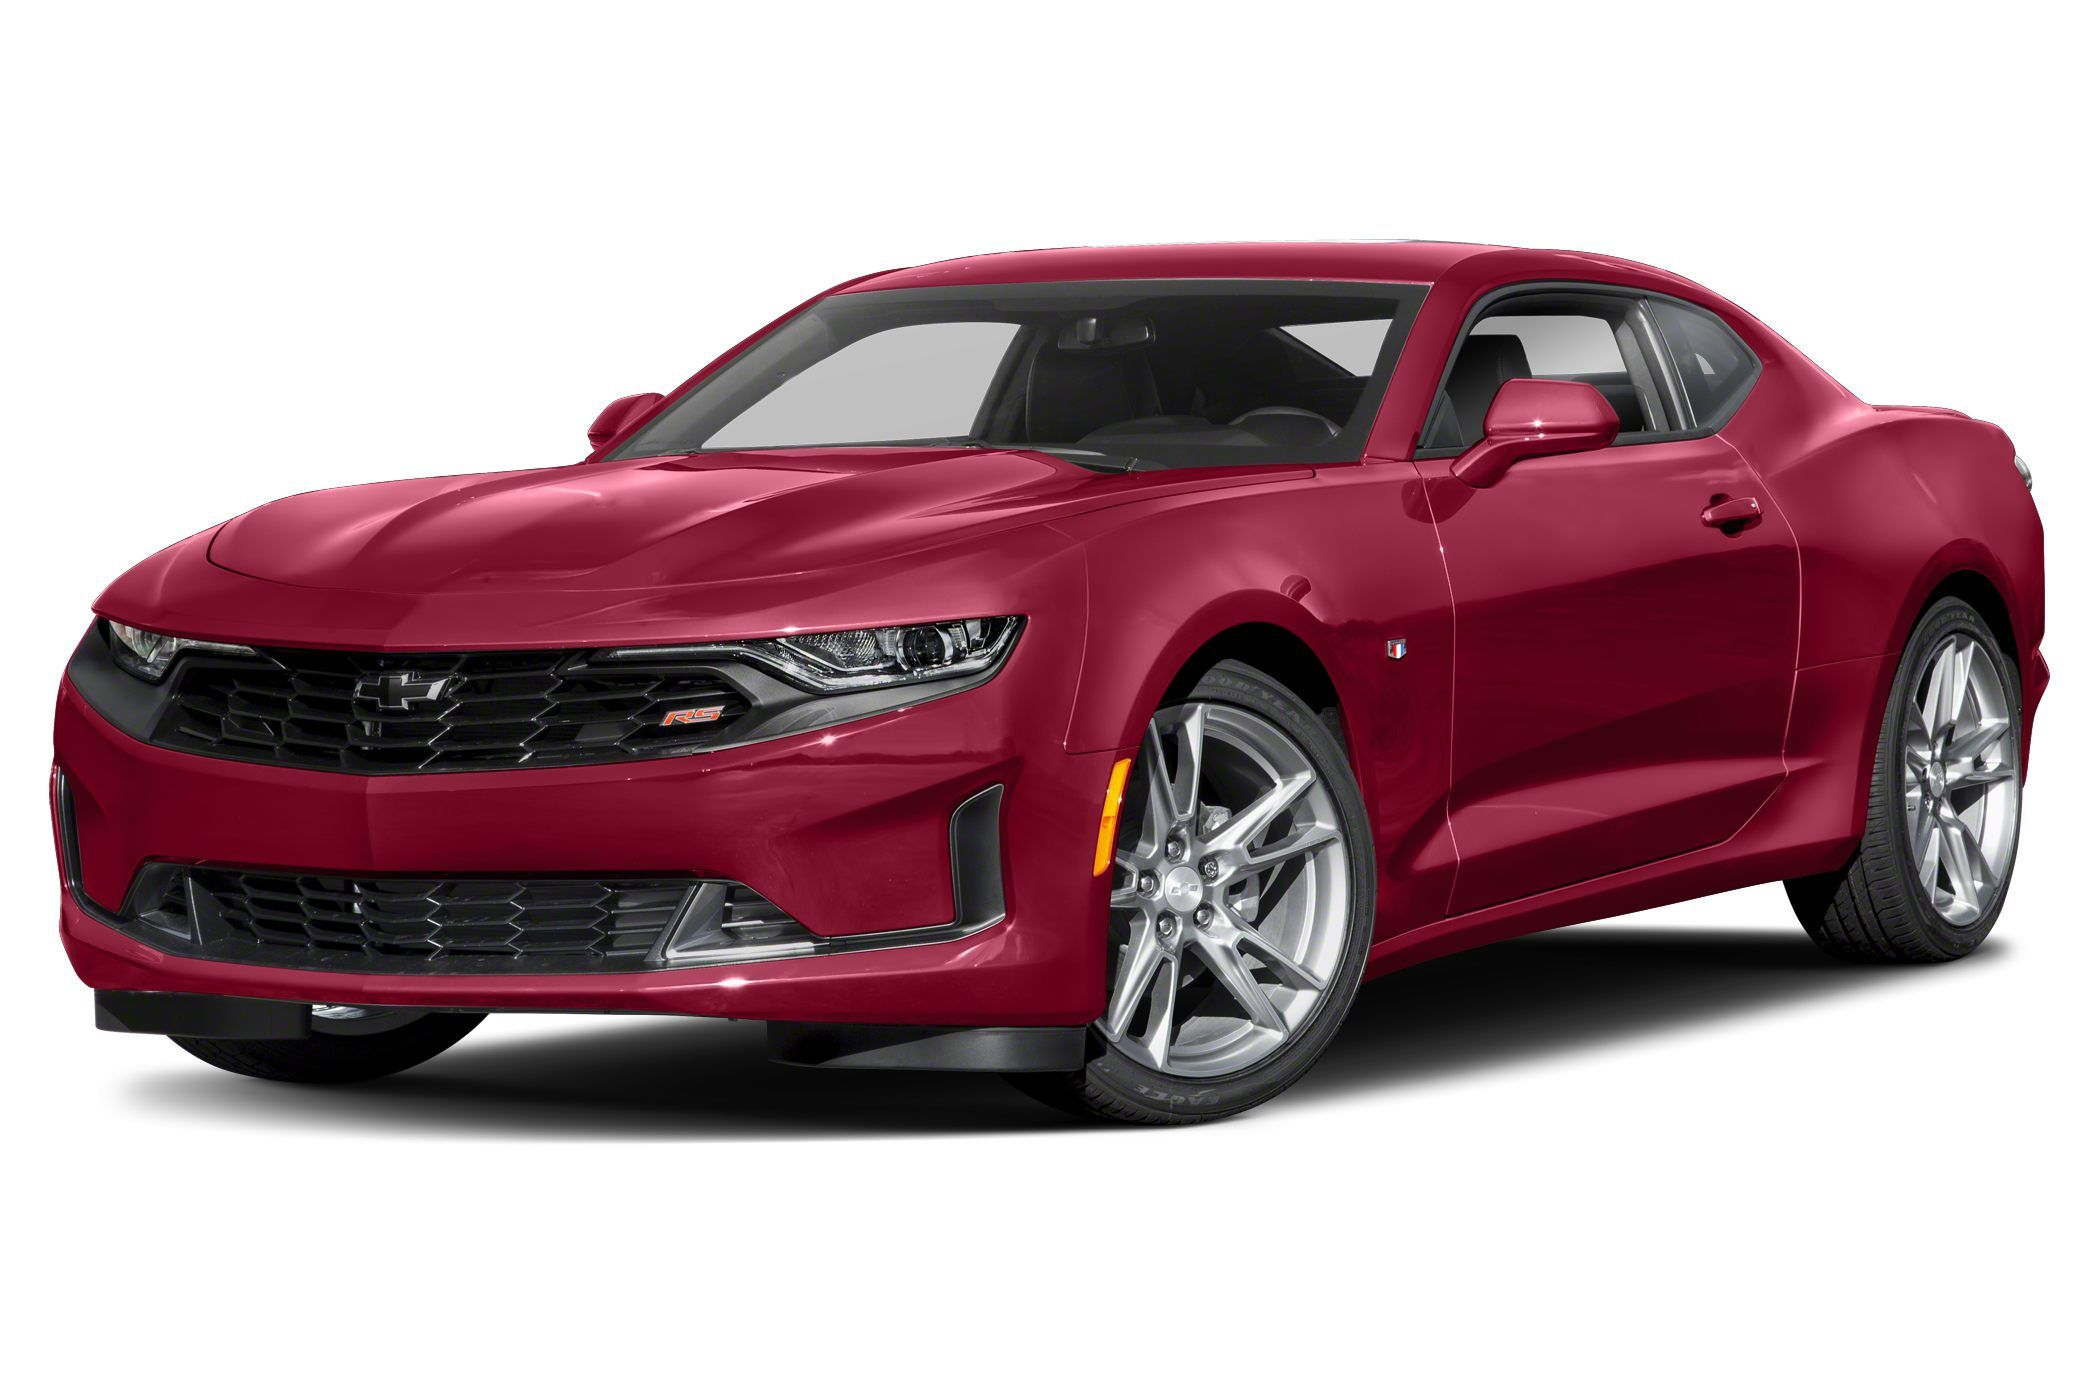 2020 Chevy Camaro Competition Arrival Concept and Review